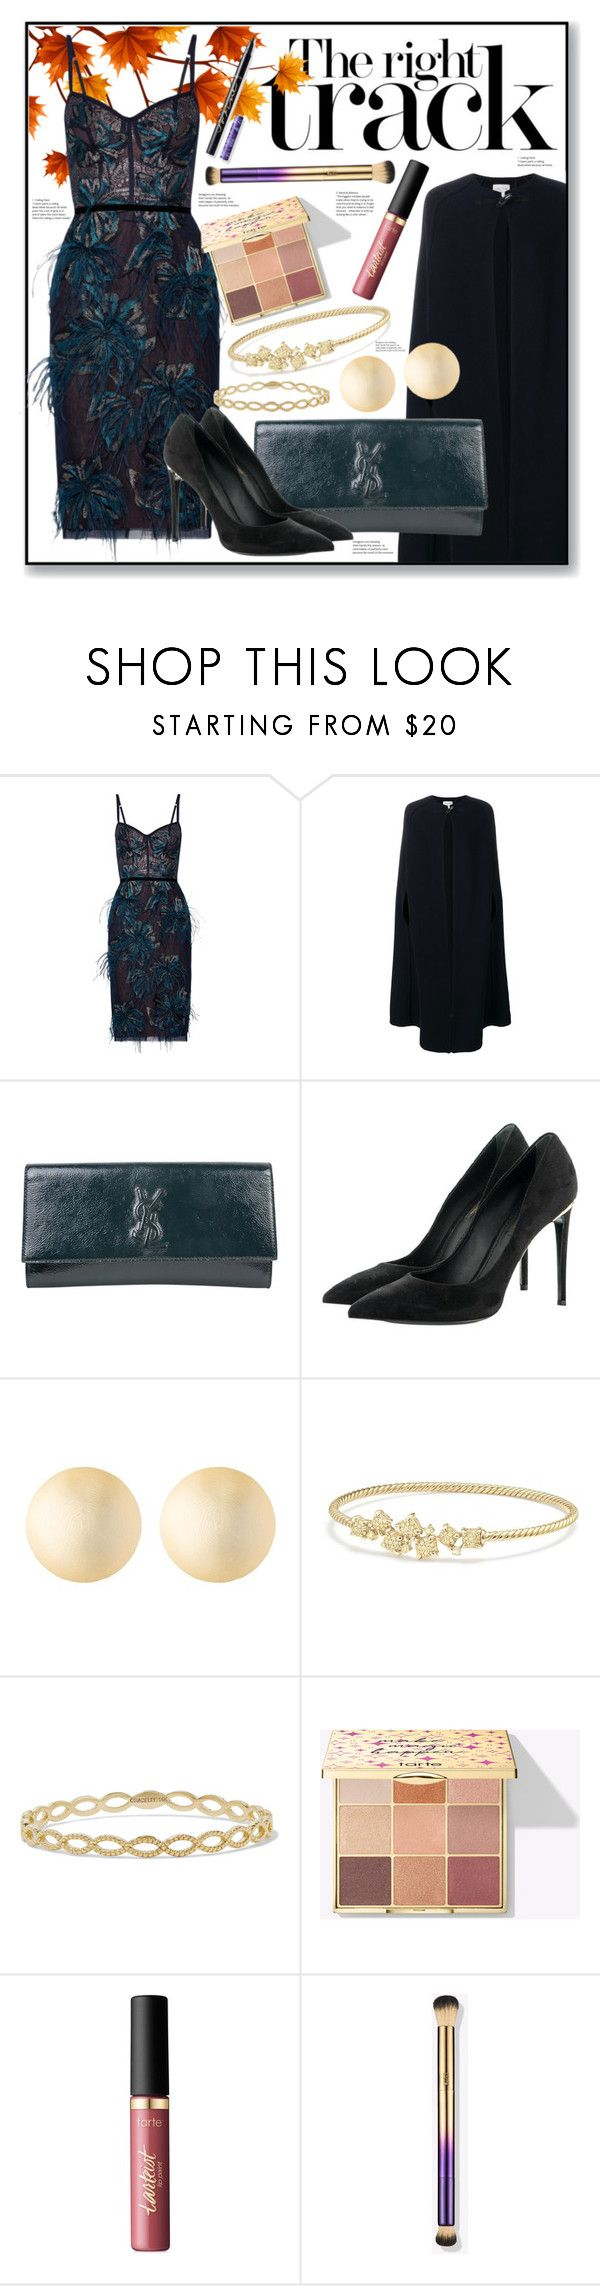 """The Right Dress"" by piloariass ❤ liked on Polyvore featuring Notte by Marchesa, Forte Forte, Yves Saint Laurent, Louis Vuitton, Alexis Bittar, David Yurman, Grace Lee Designs and tarte"